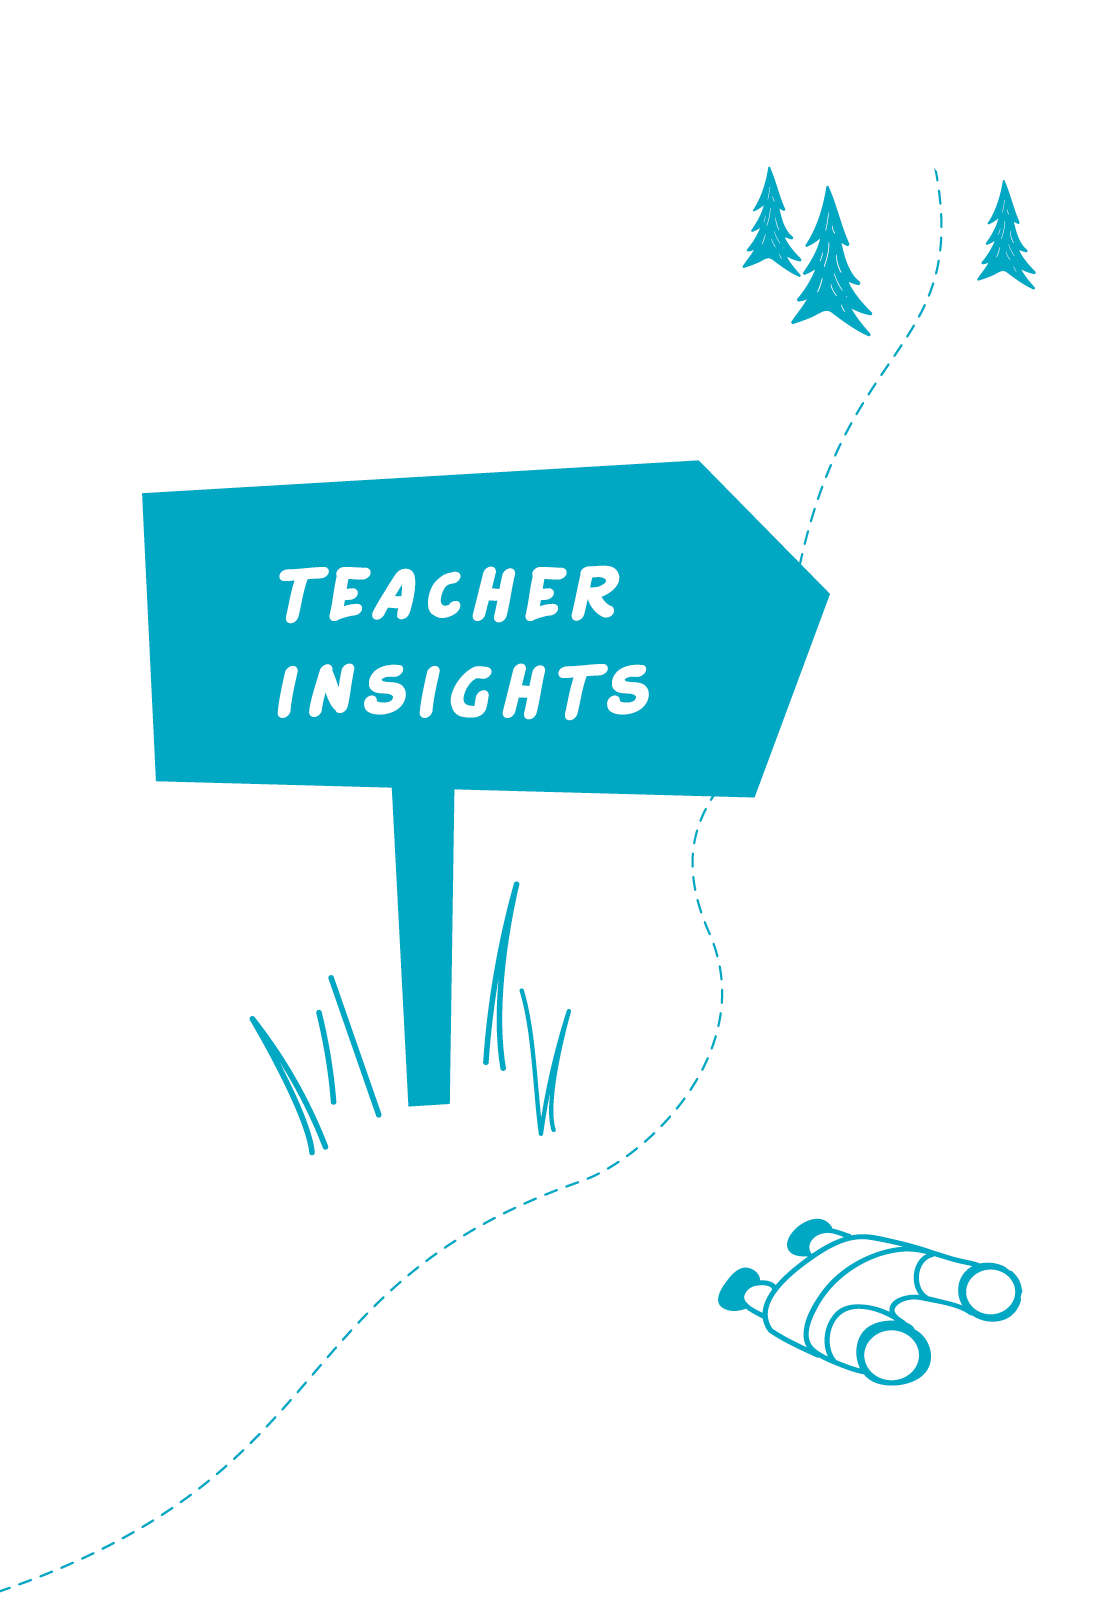 Teacher insights